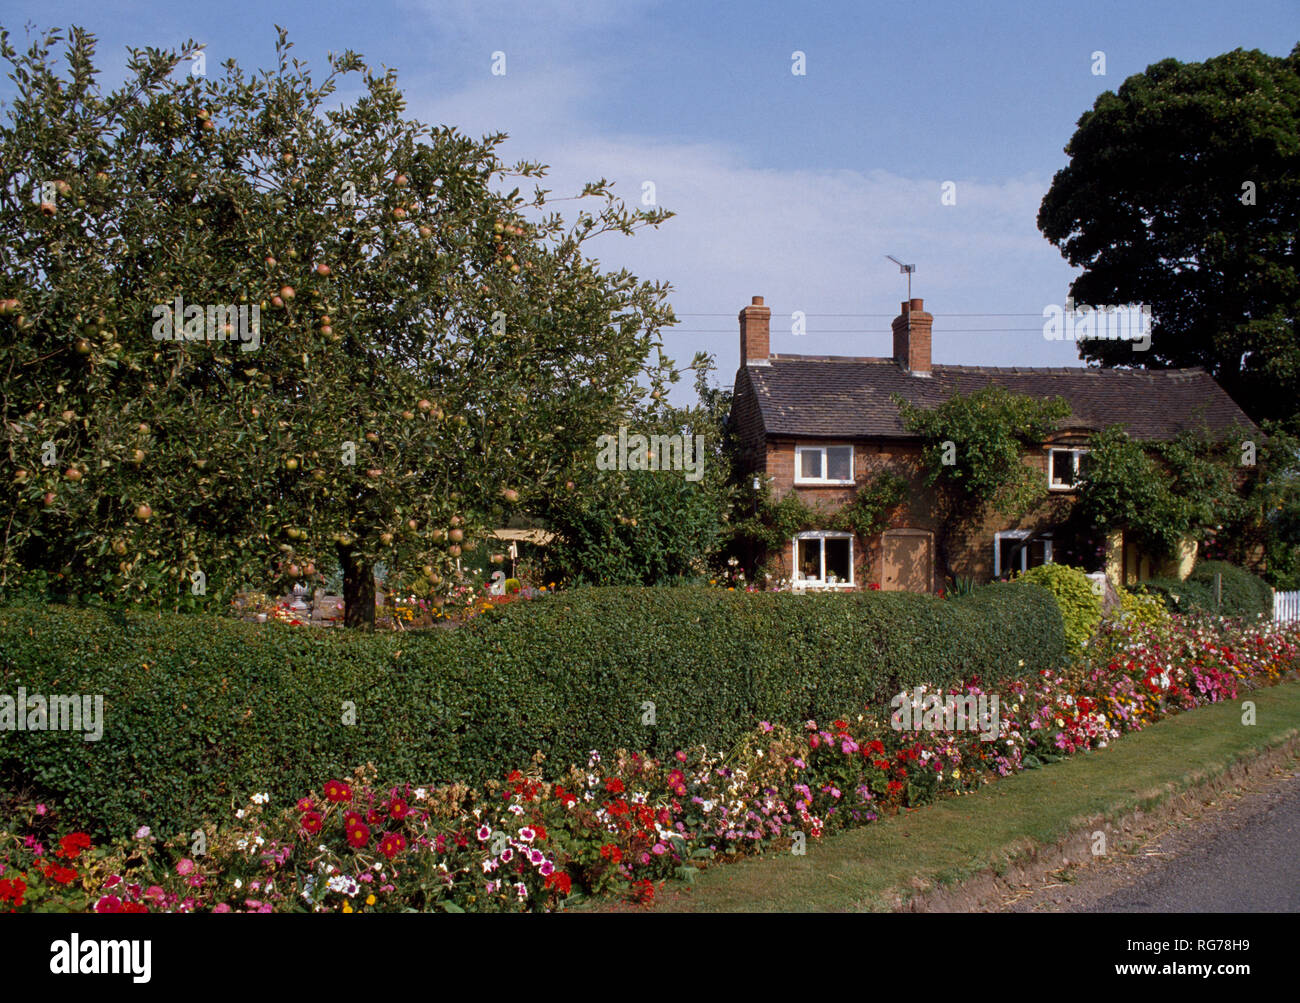 Colourful annuals against hedge with small house in background - Stock Image